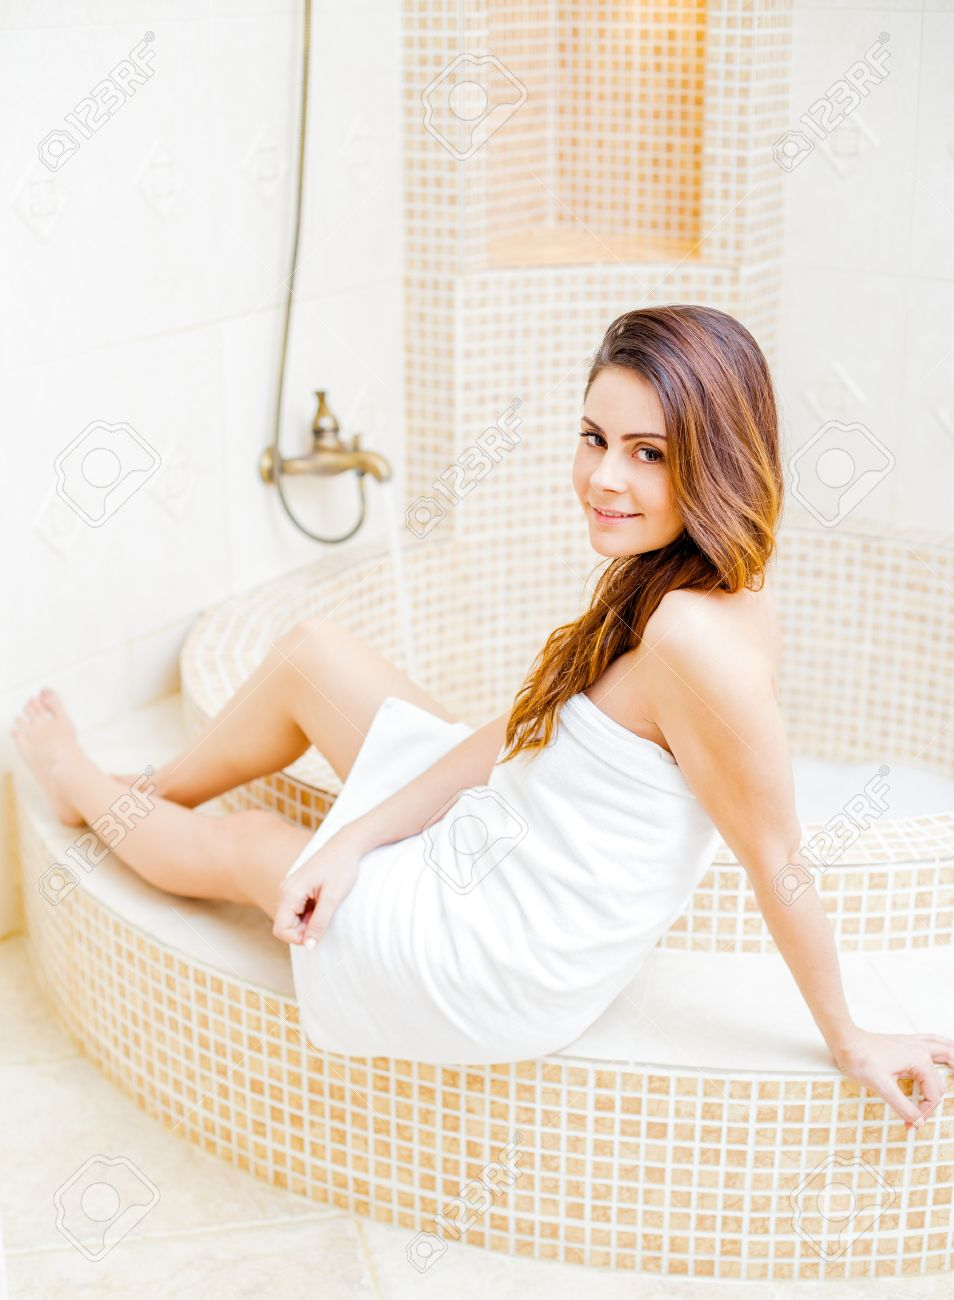 Hot bathroom pictures - Hot Girl In The Bathroom In White Towel Stock Photo 41558945